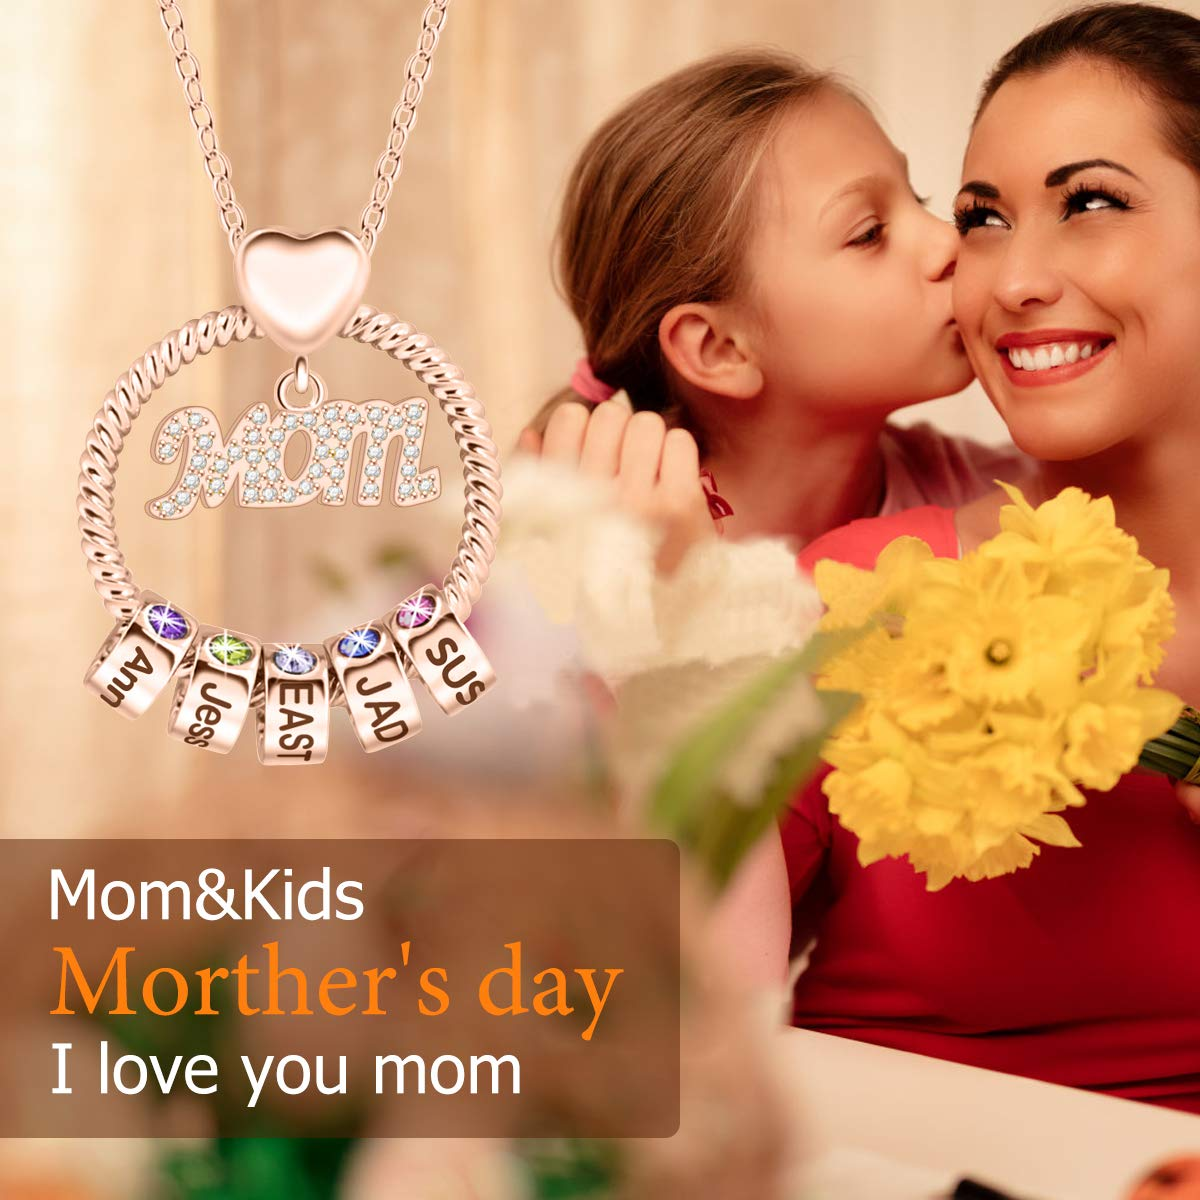 Mom 1-5 Name Beads and Birthstones Personalized Custom Family Necklace Jewelry Mother's Day Gift for Women Mom